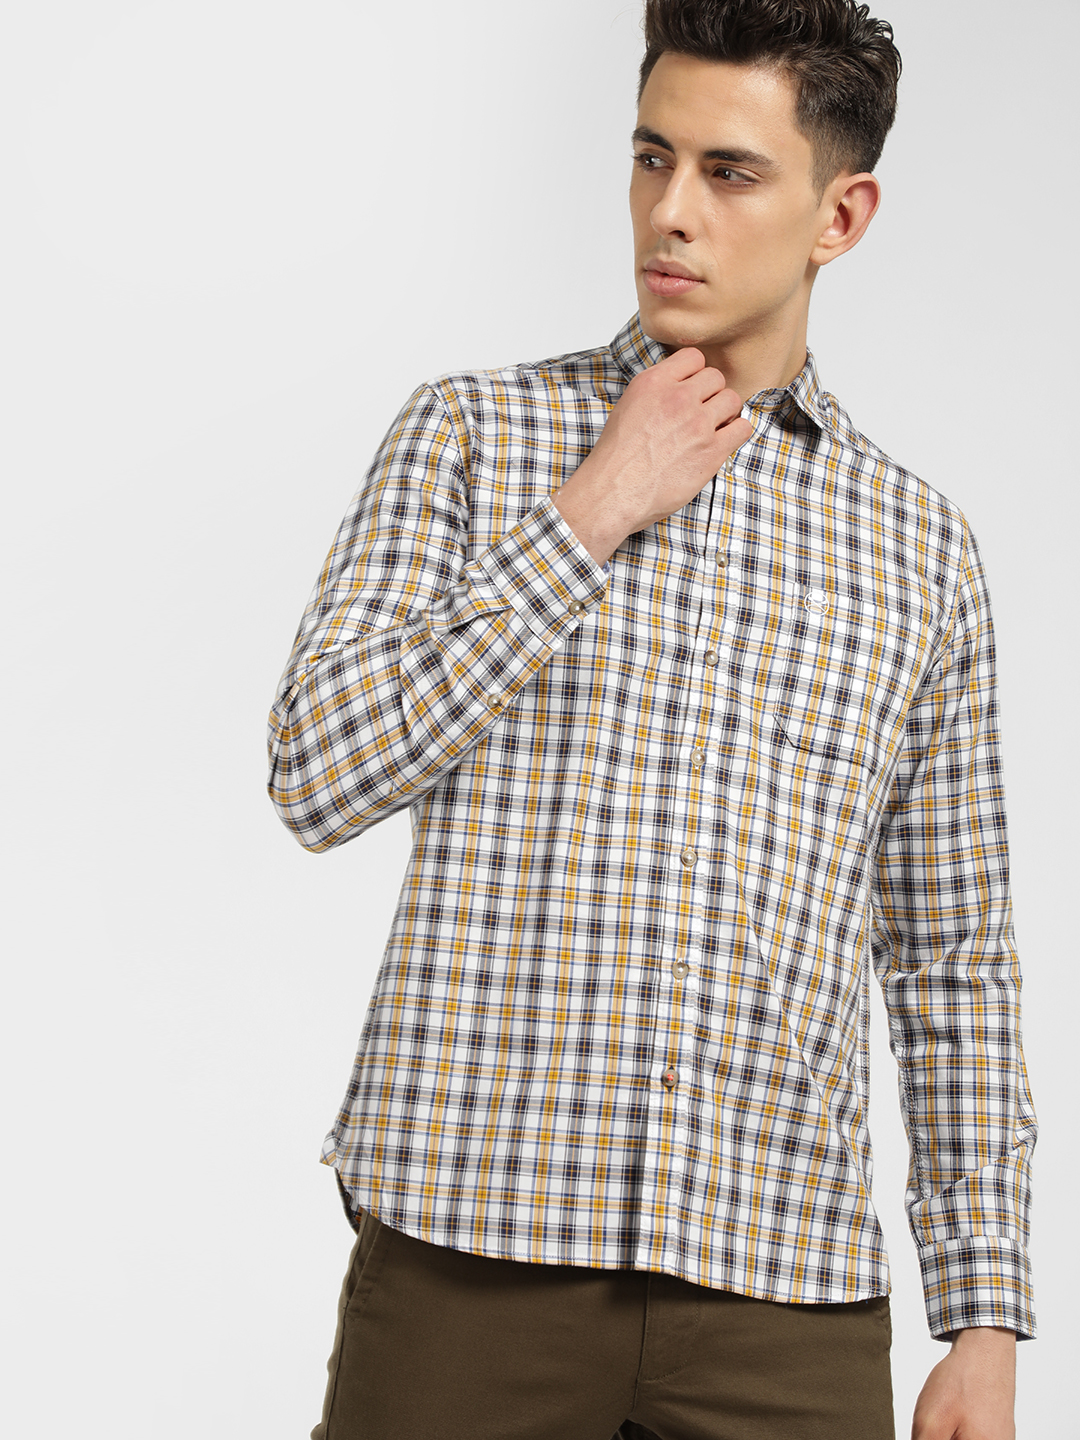 SCULLERS White Multi-Check Slim Oxford Shirt 1